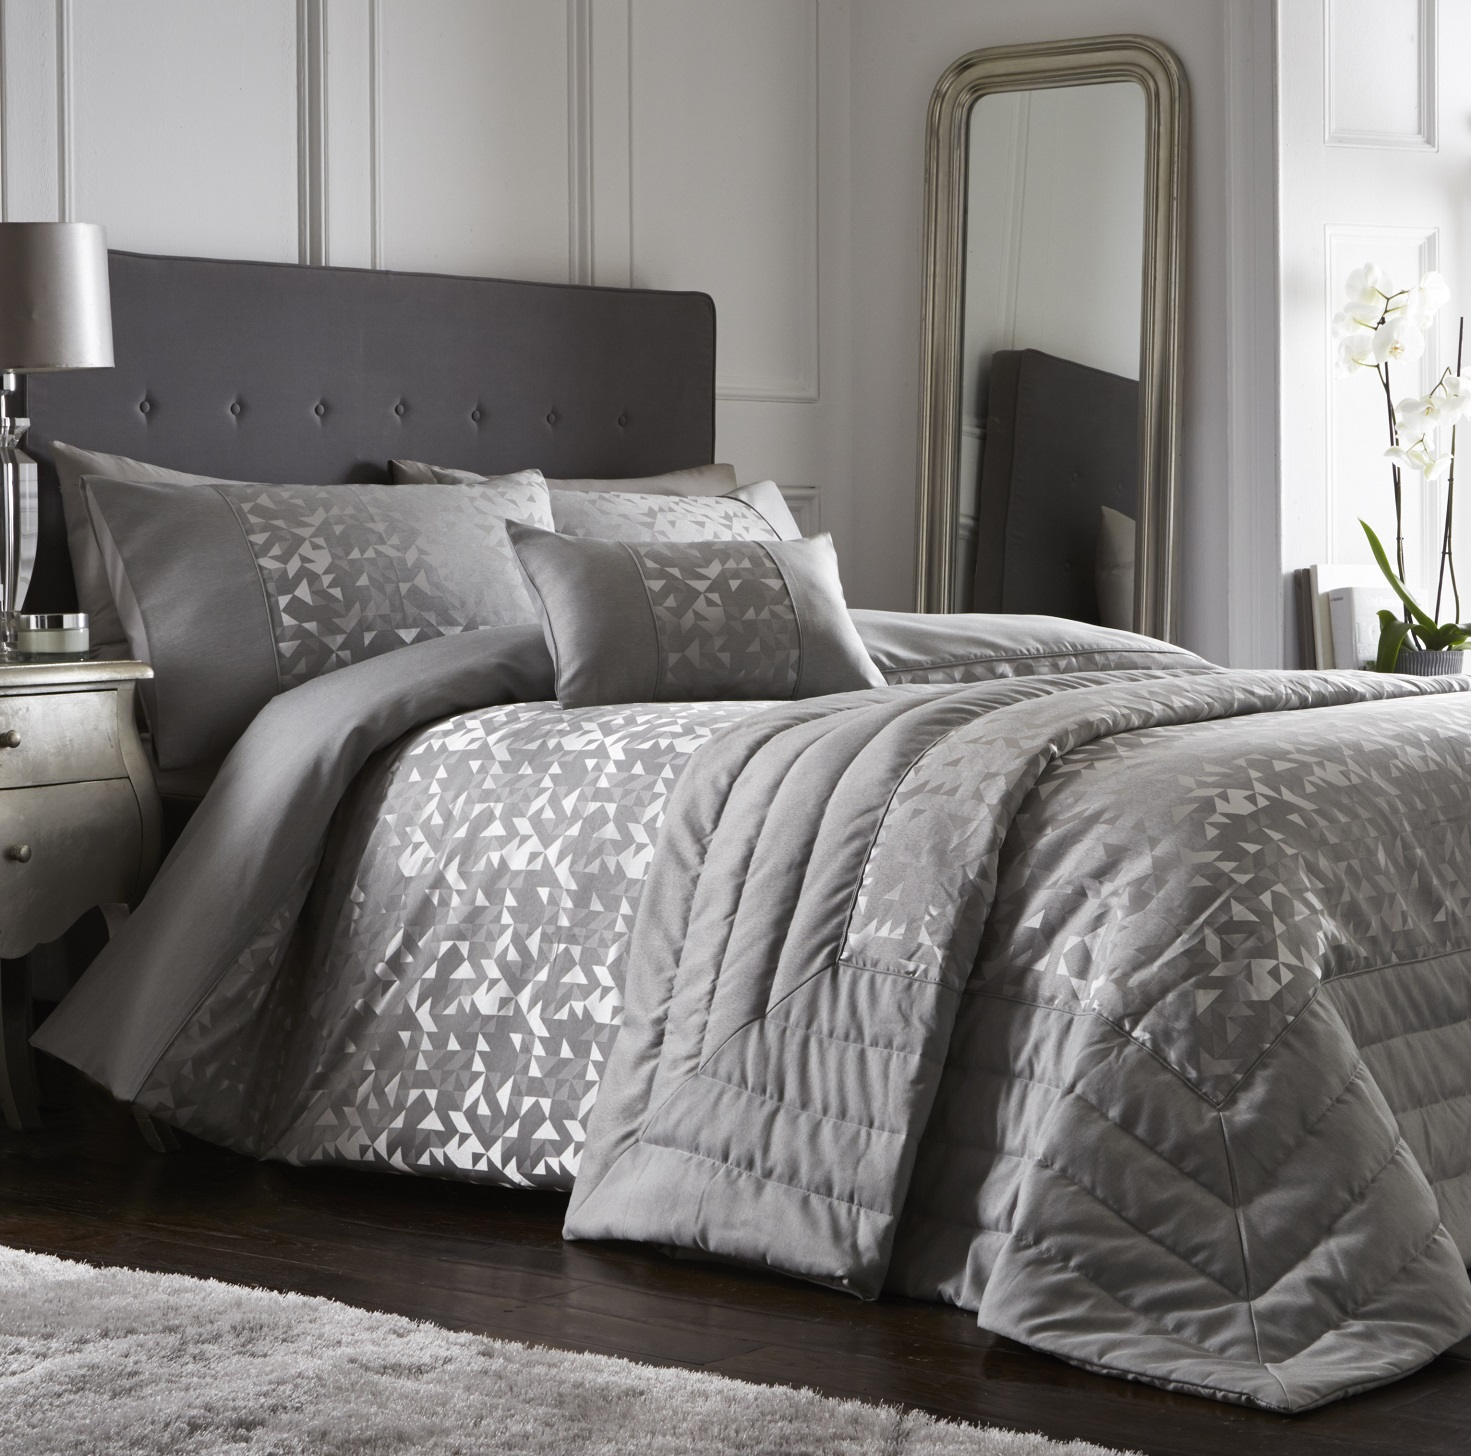 Luxury Grey Silver Jacquard Duvet Cover Bedding Set with Pillowcase /& Accesories